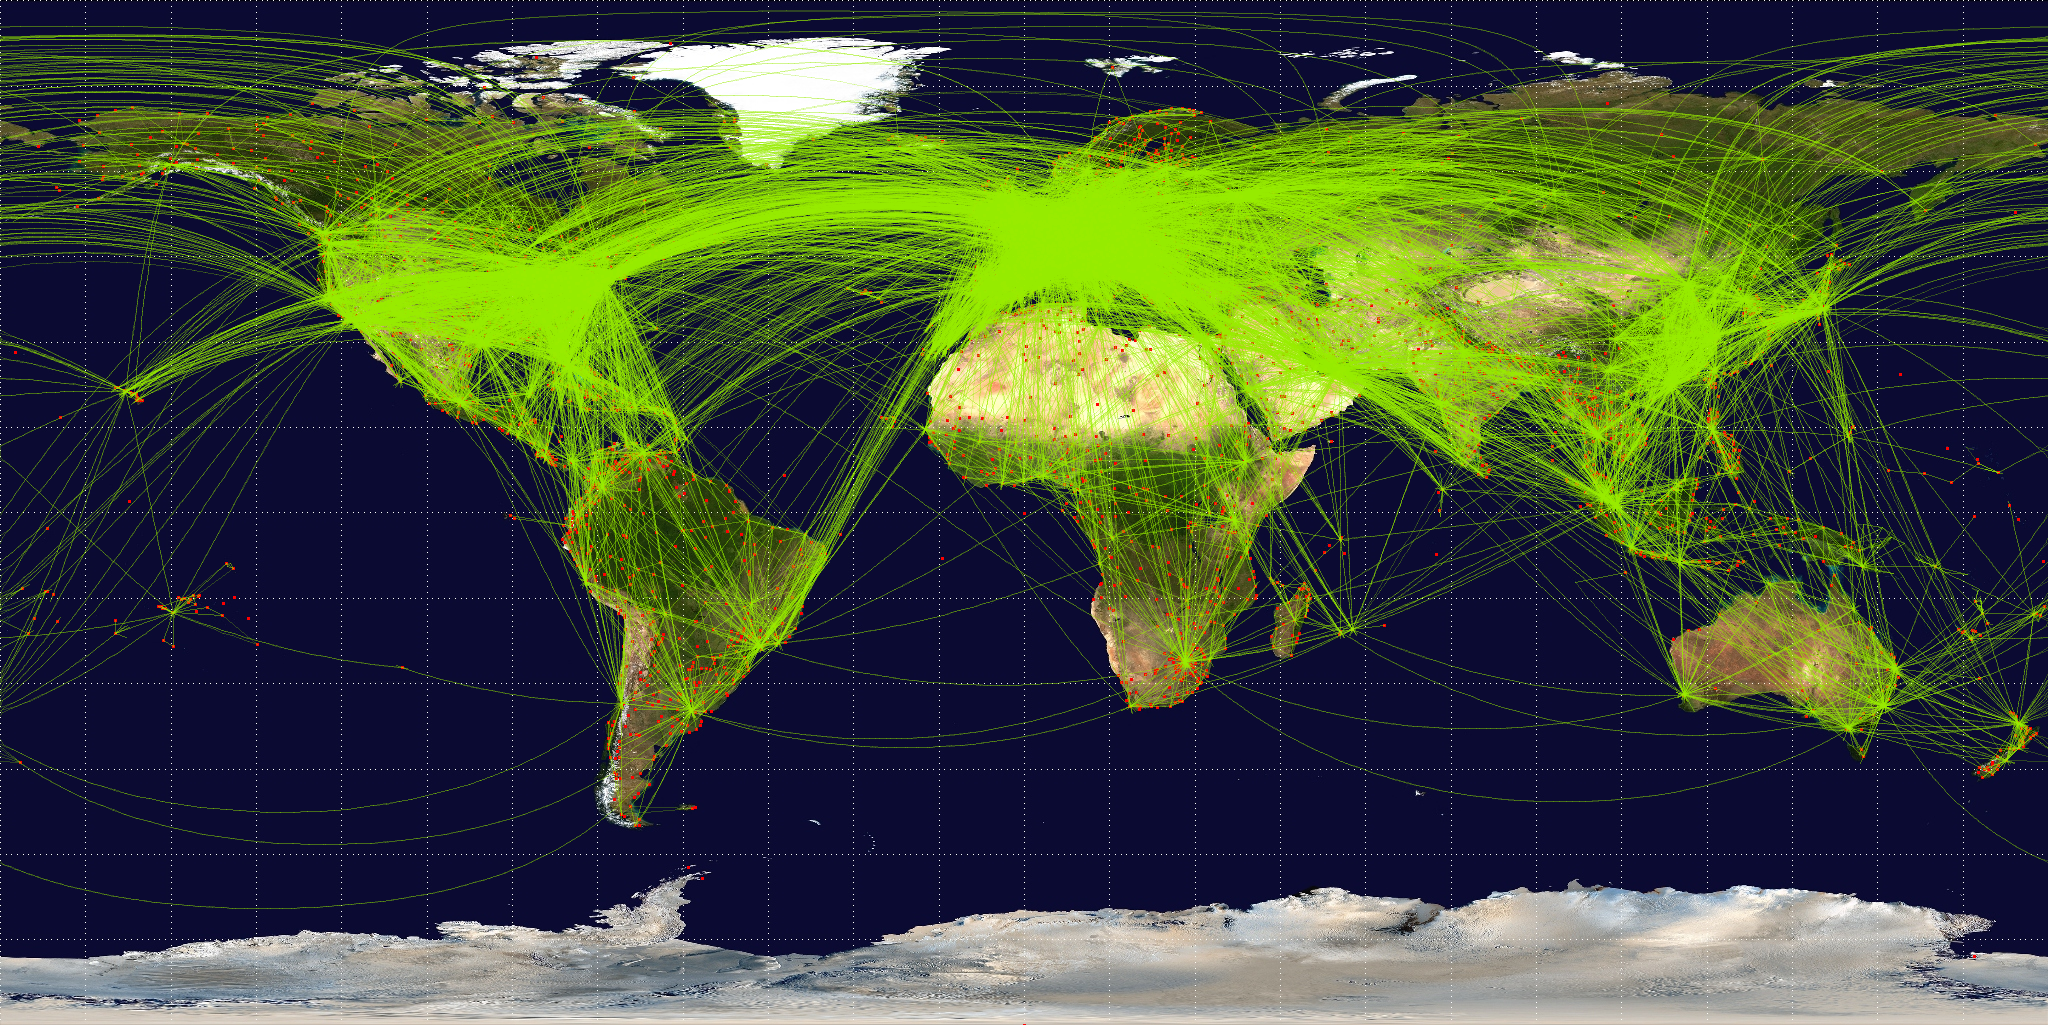 World Airline Route Map http://en.wikipedia.org/wiki/File:World-airline-routemap-2009.png